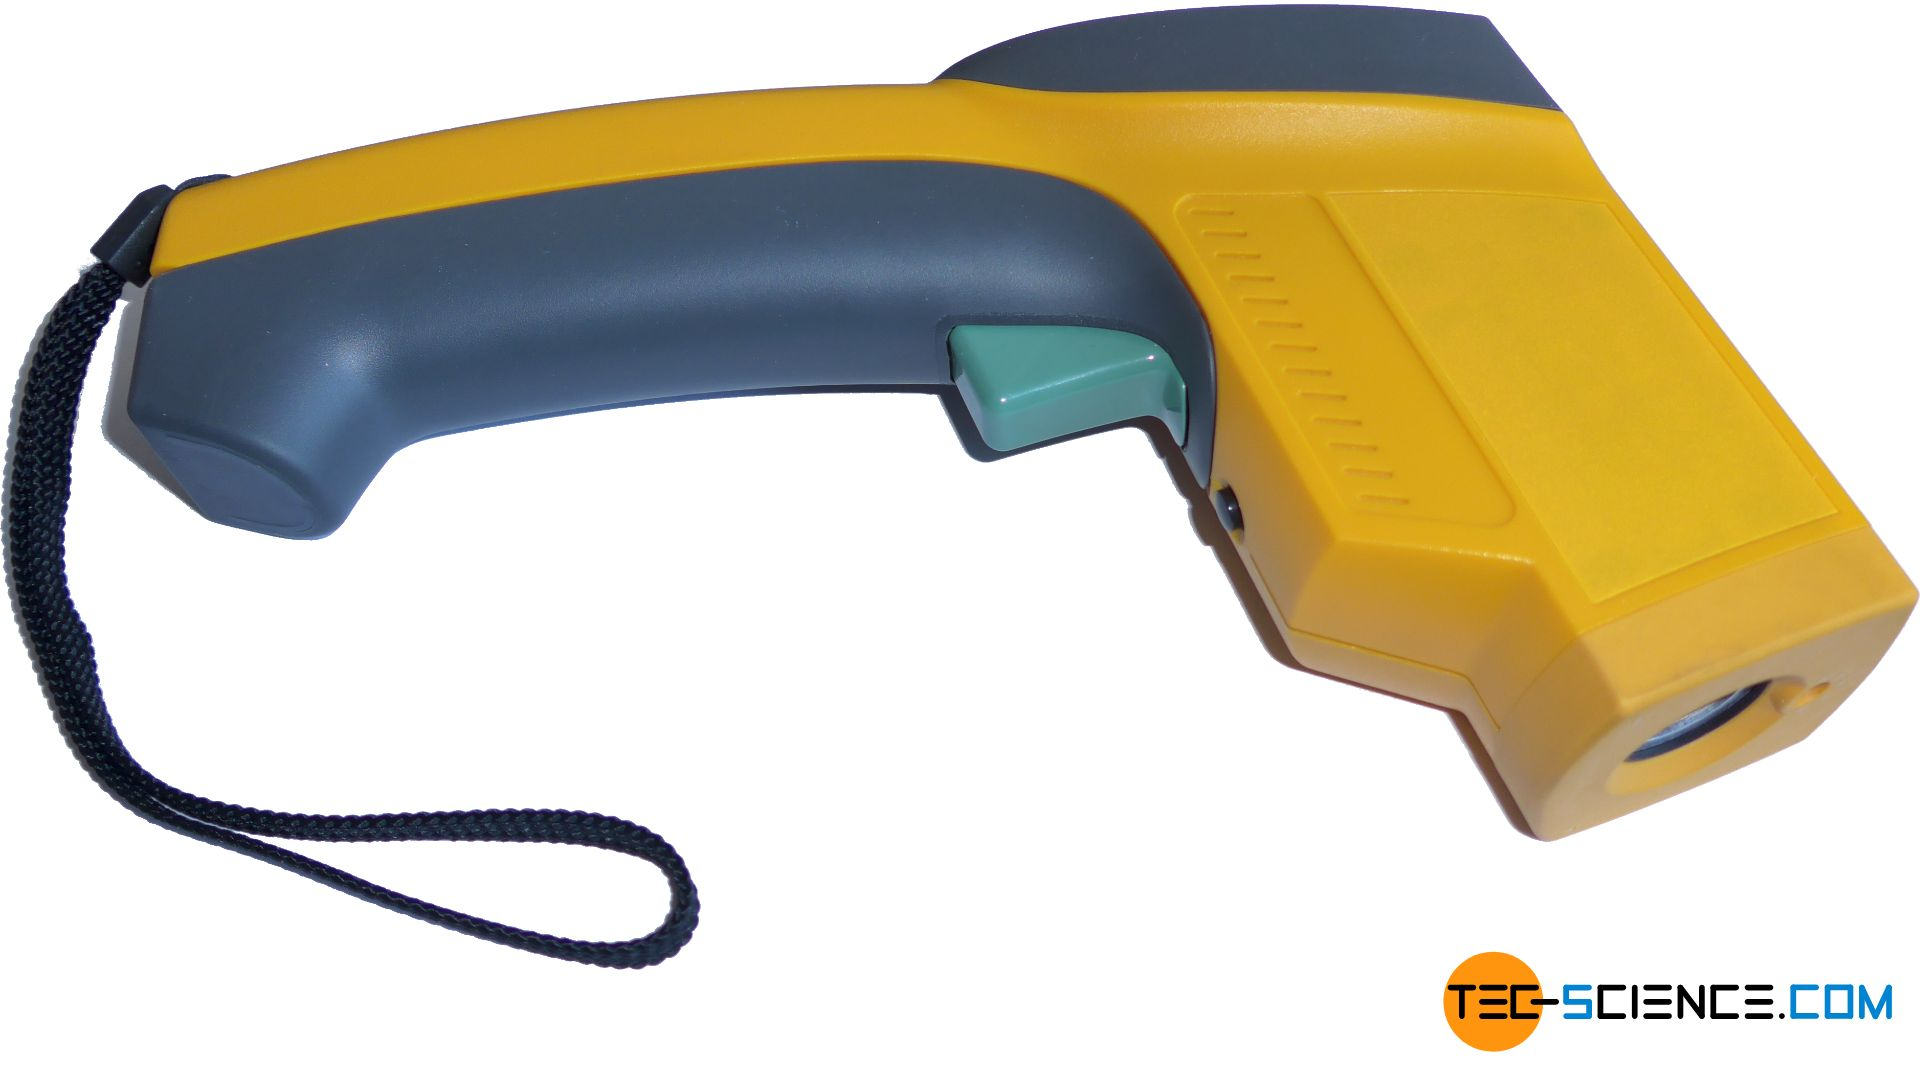 Infrared thermometer (Pyrometer)